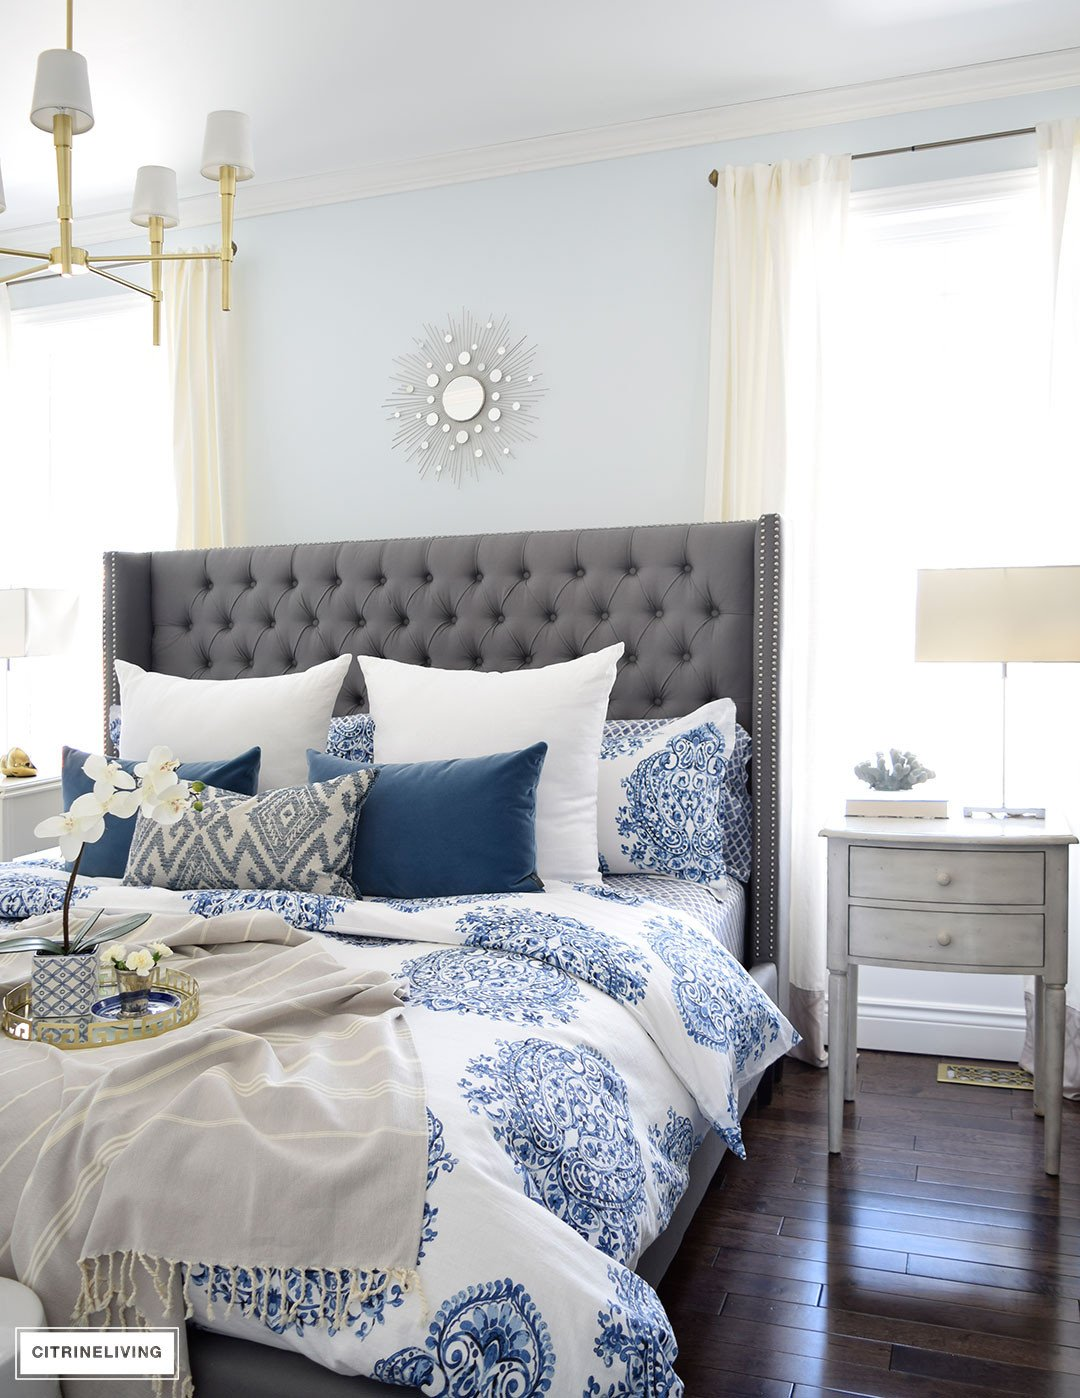 Blue and White Bedroom Decor Unique Citrineliving Spring In Full Swing Home tour 2017